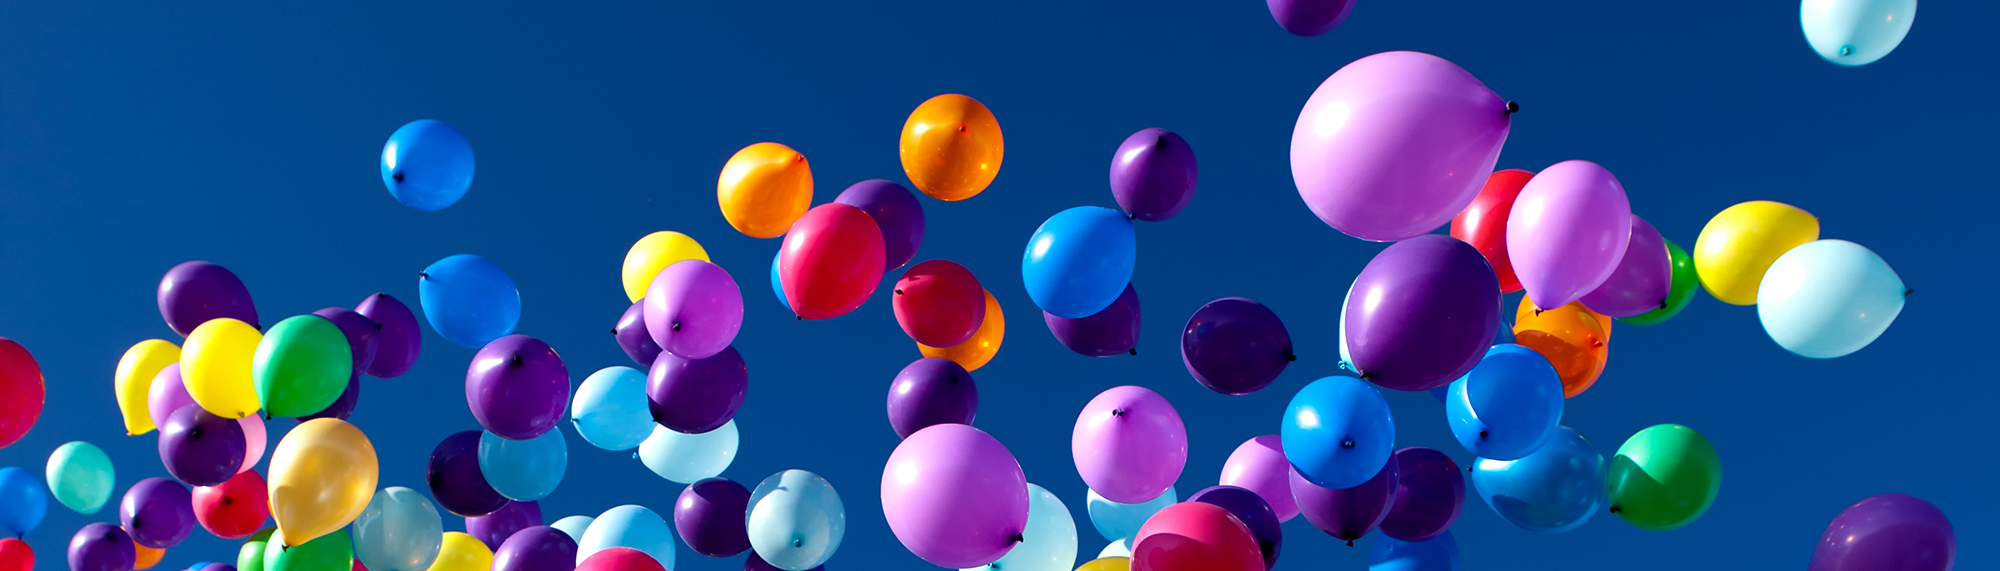 colorful-balloons-flying-in-the-sky-party